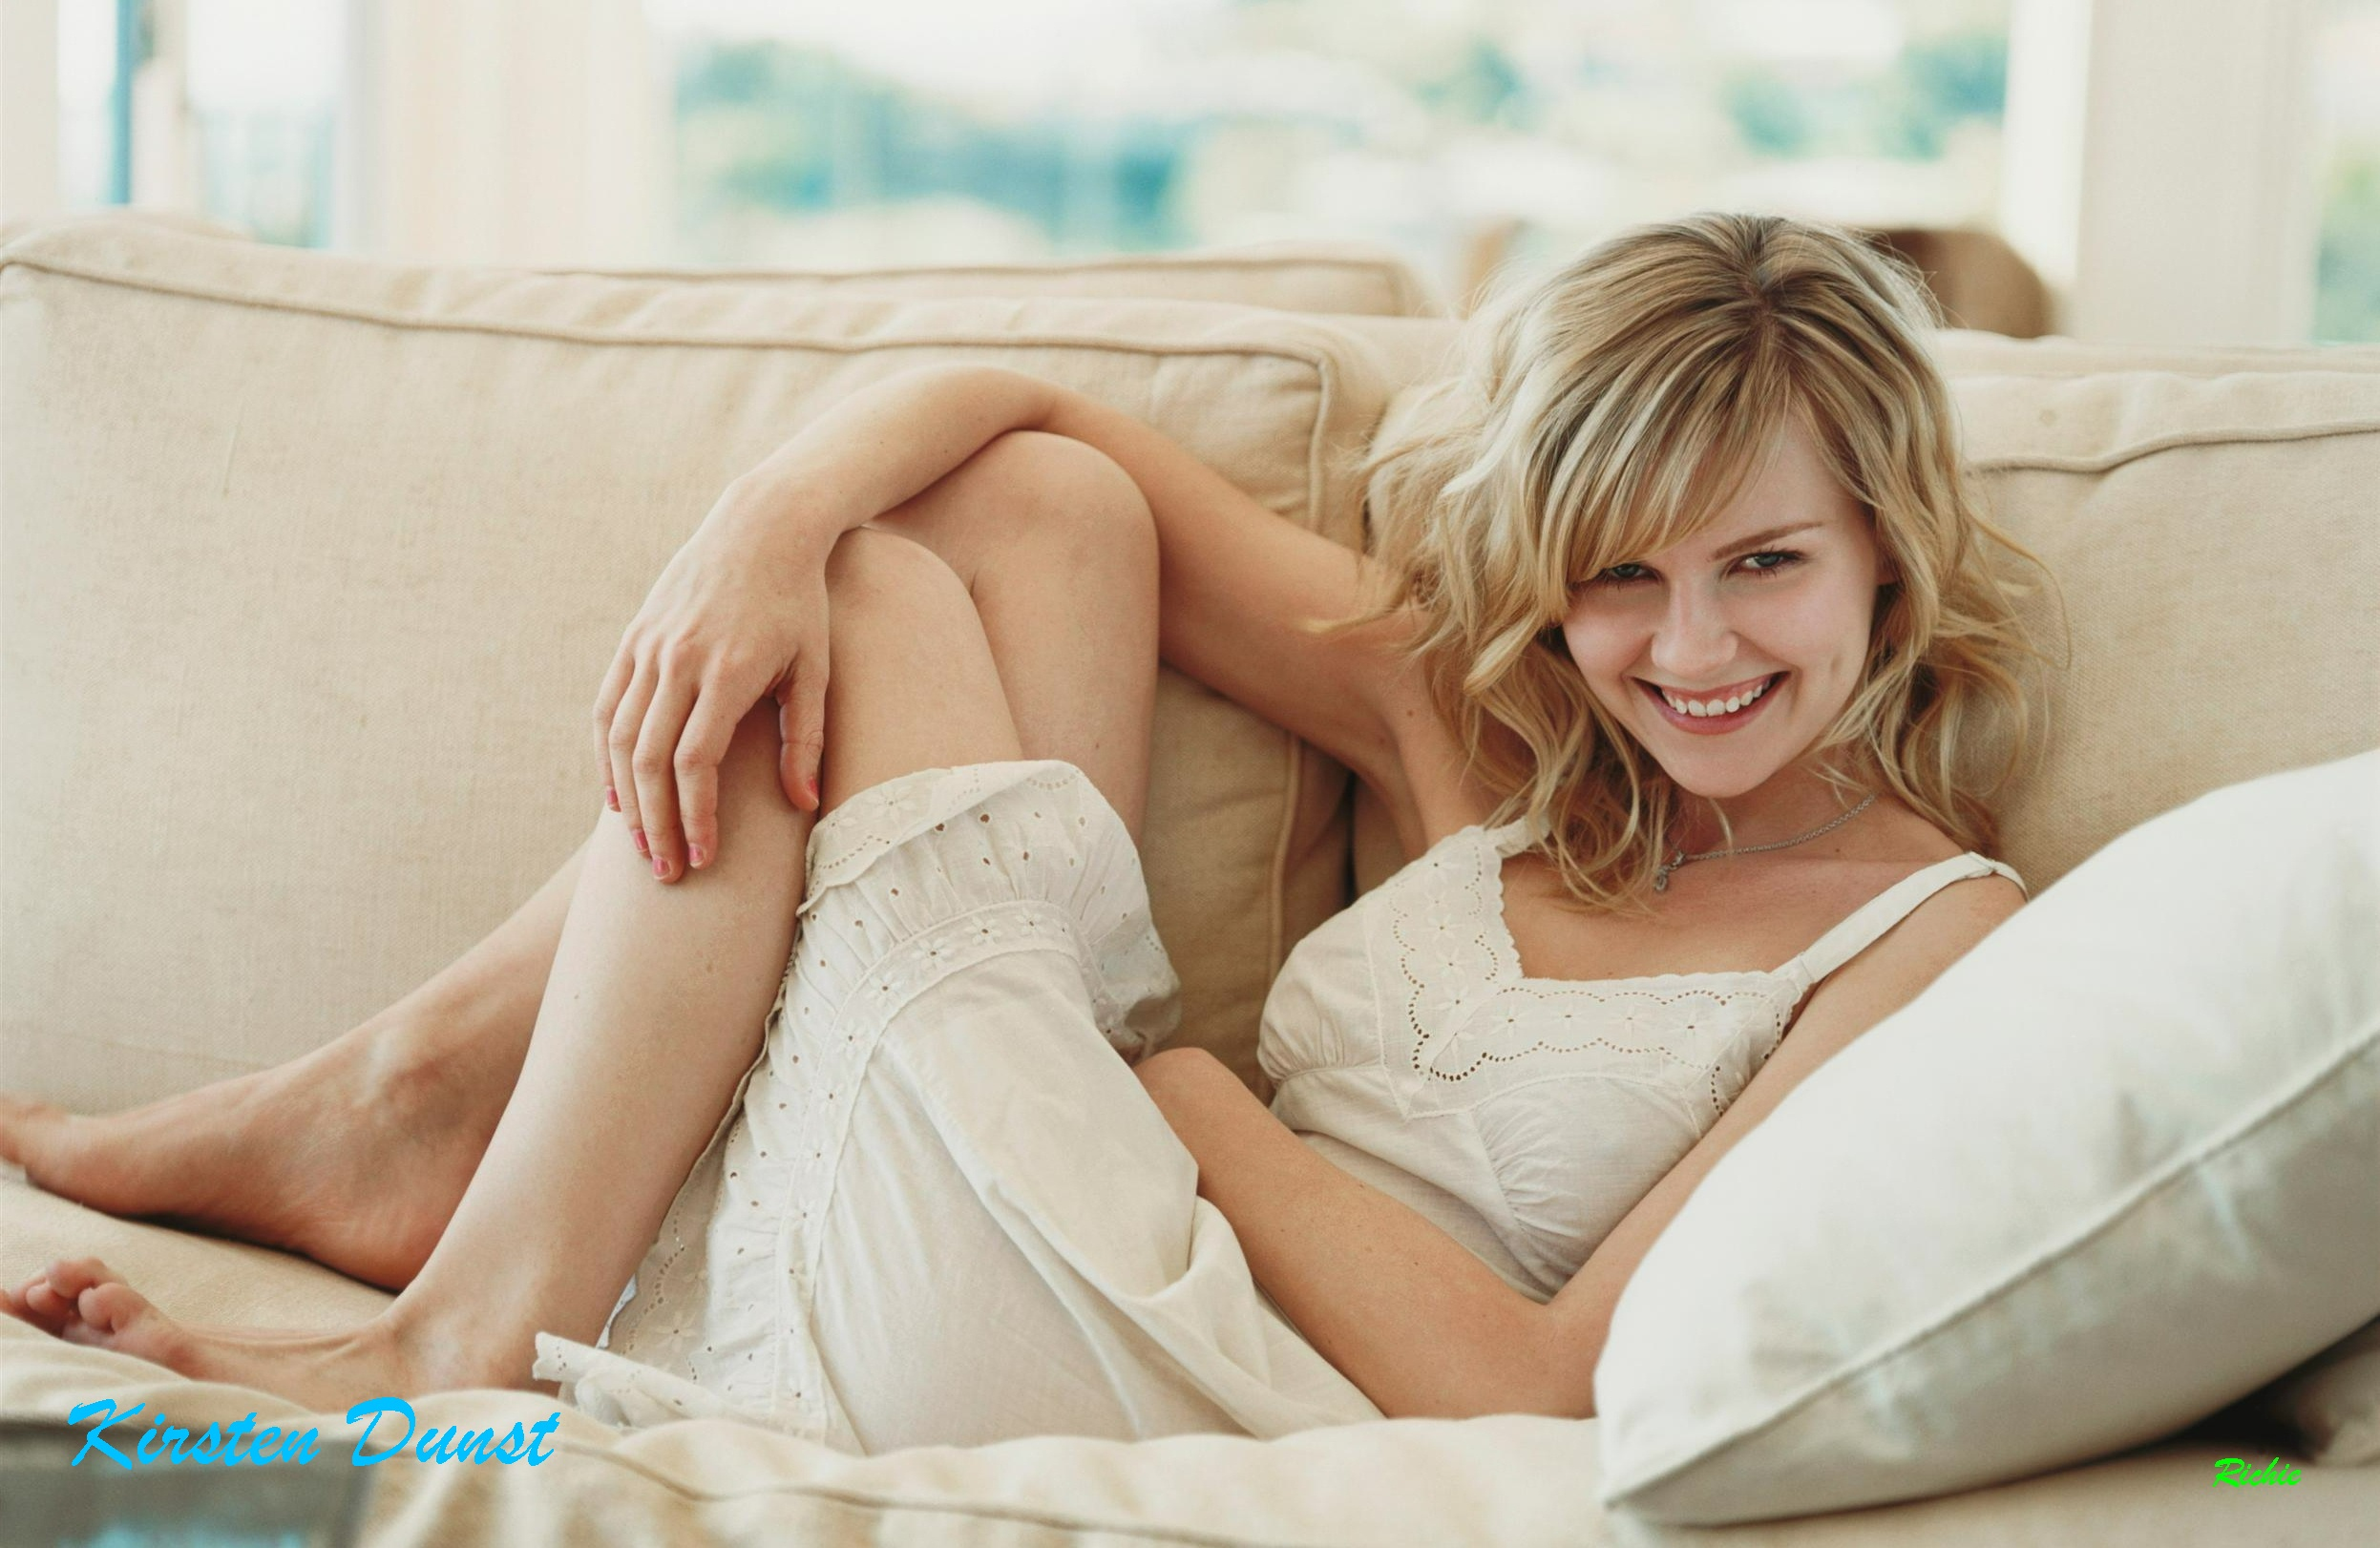 blondes woman couch dress HD Wallpaper